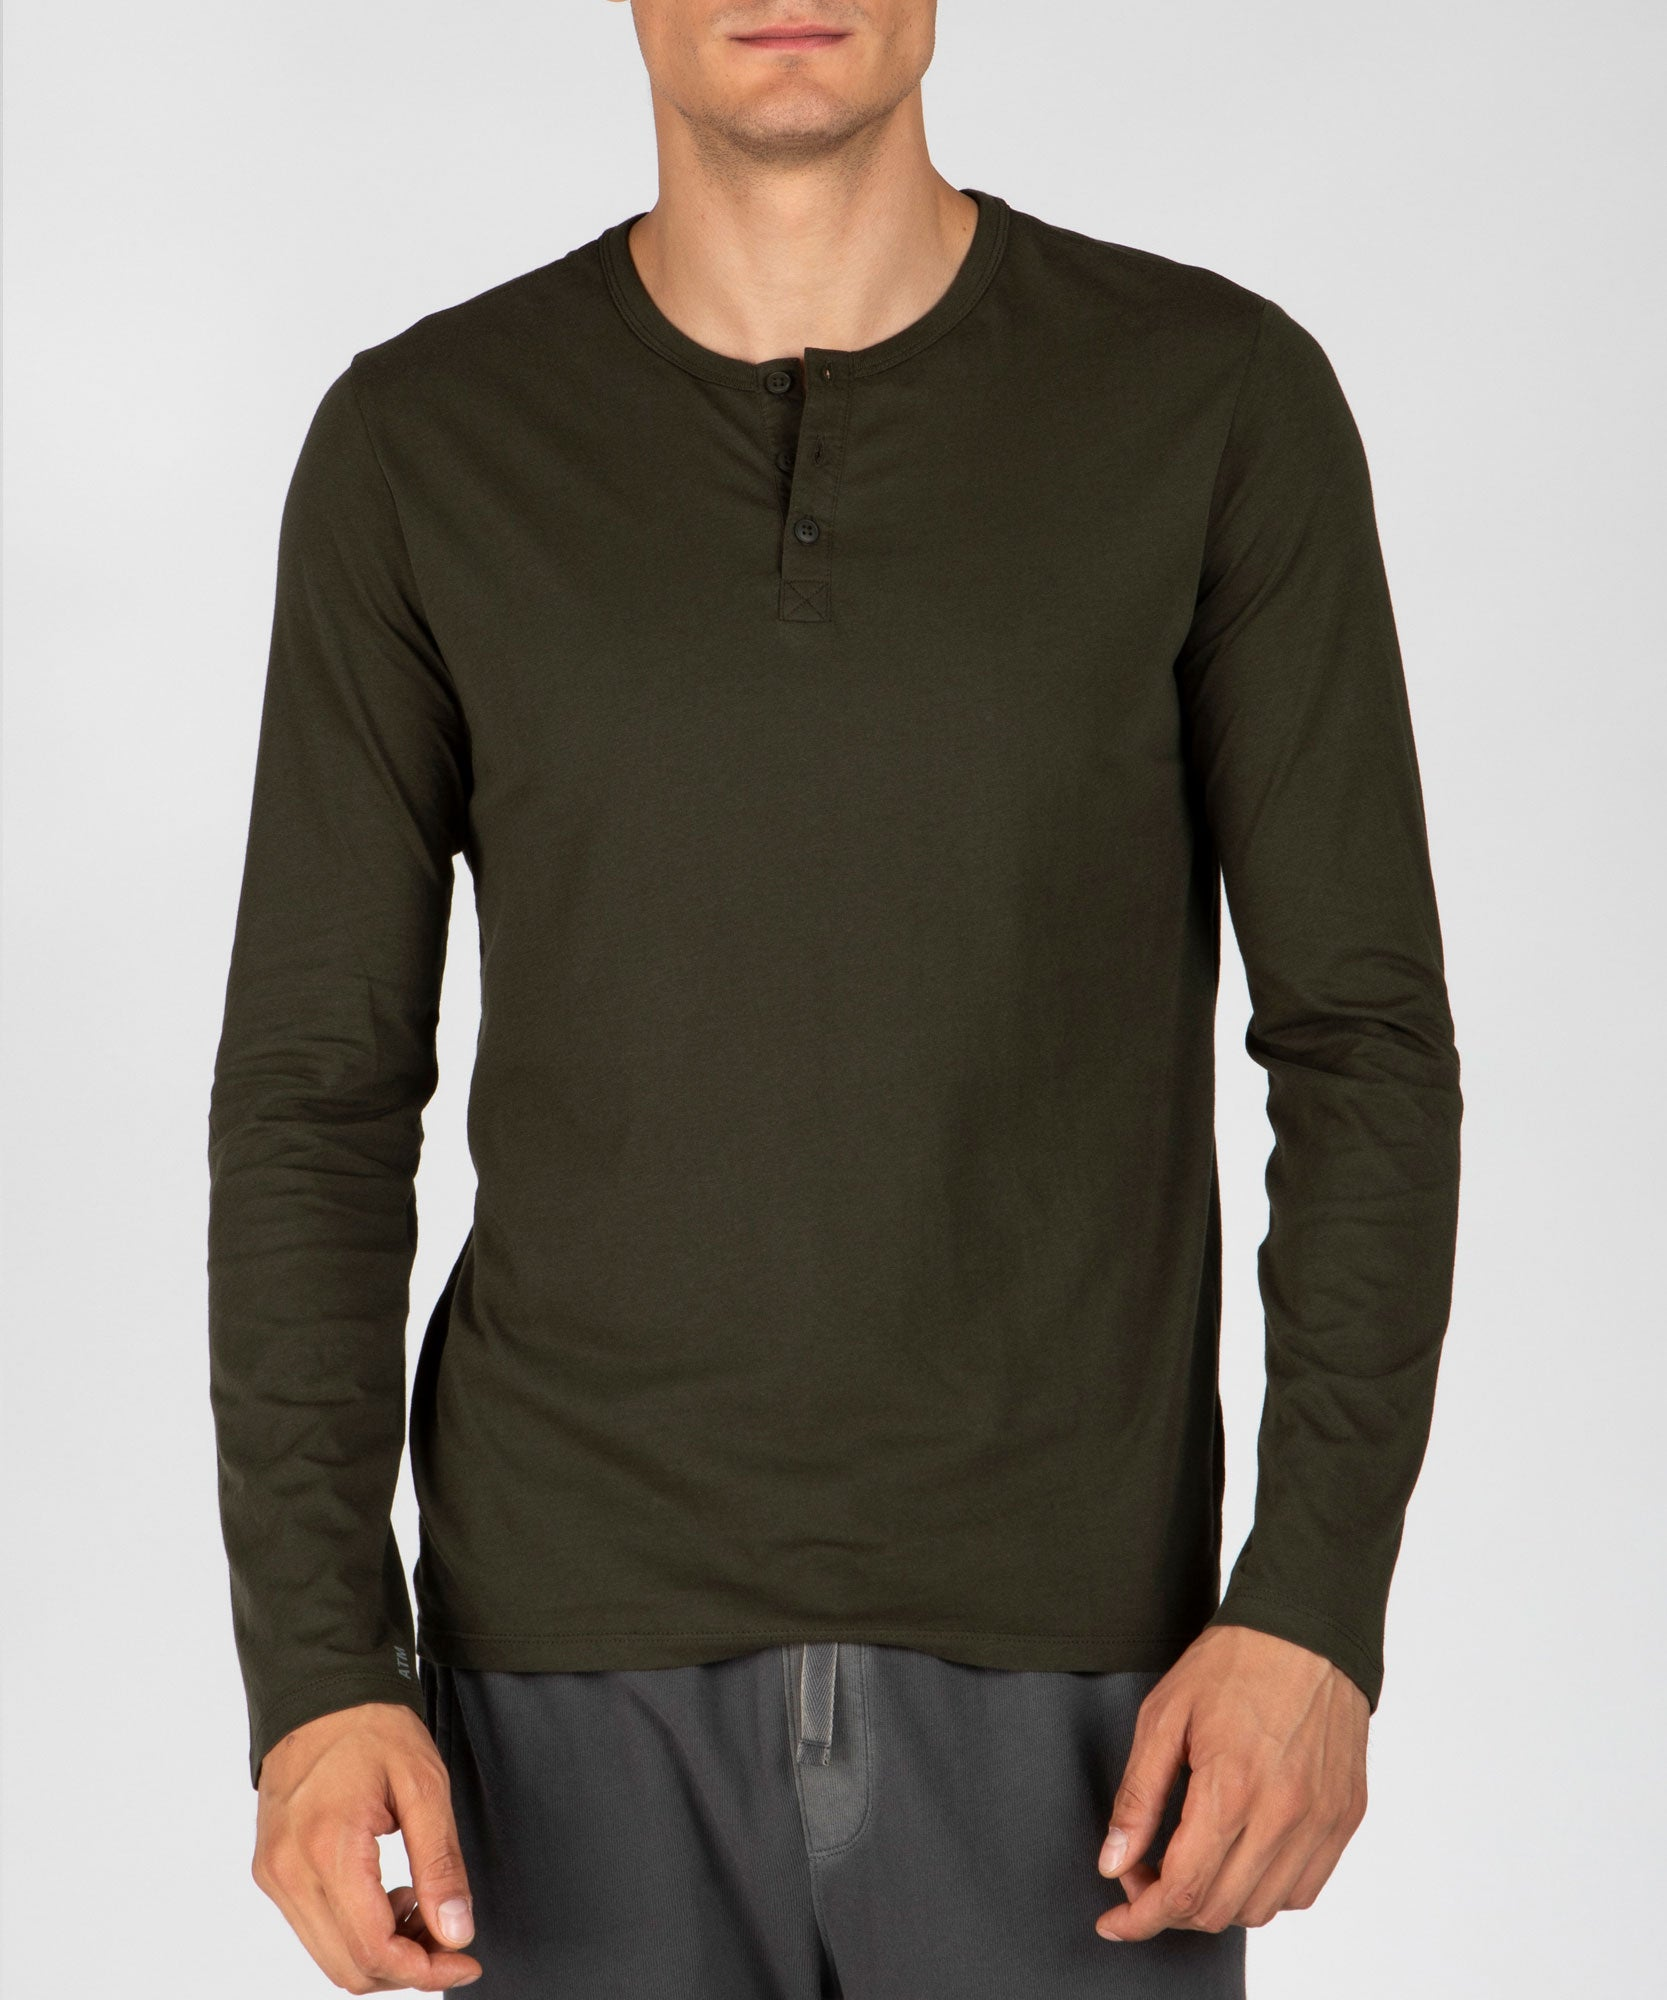 Jungle Classic Jersey Henley - Men's Cotton Long Sleeve T-shirt by ATM Anthony Thomas Melillo